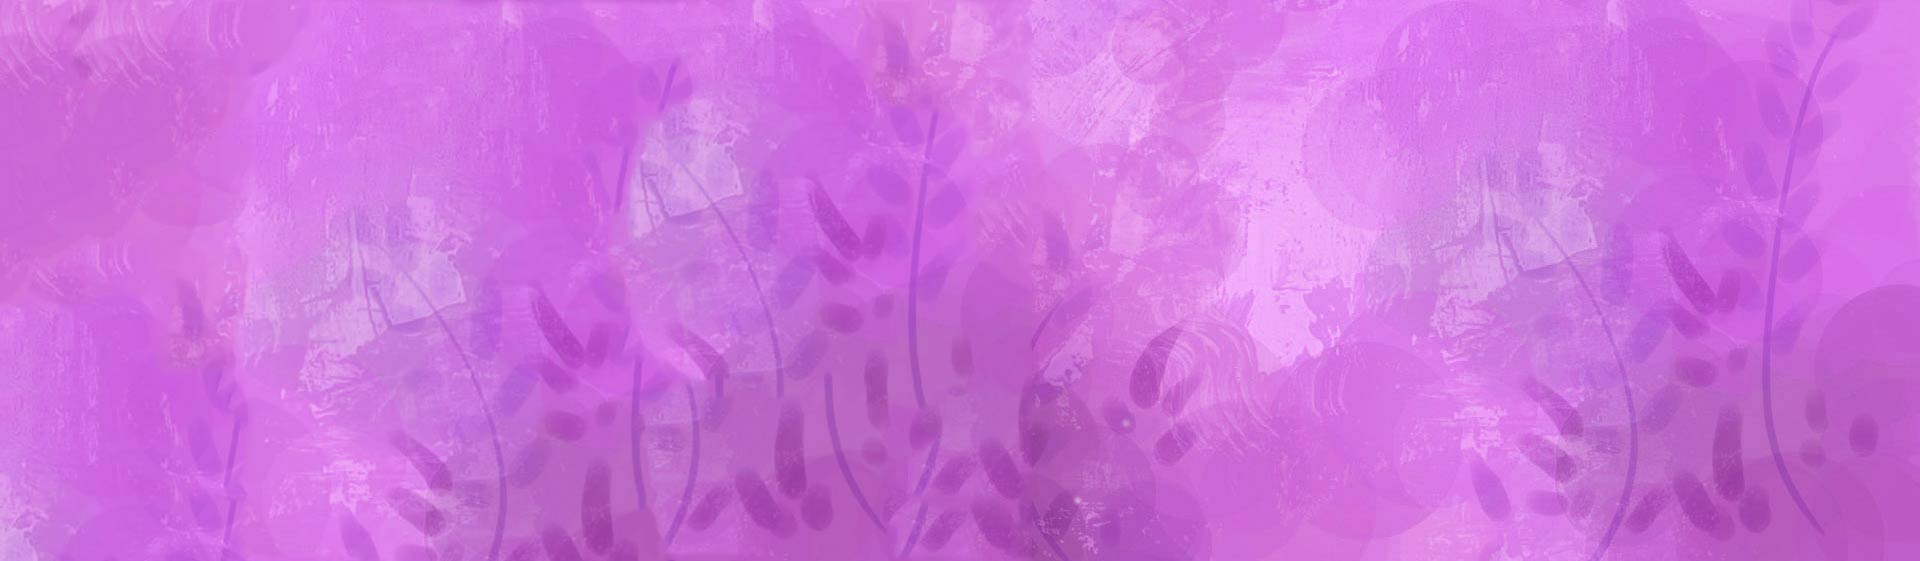 Hd Colorful Floral Banner Background, Bright, Poster ...